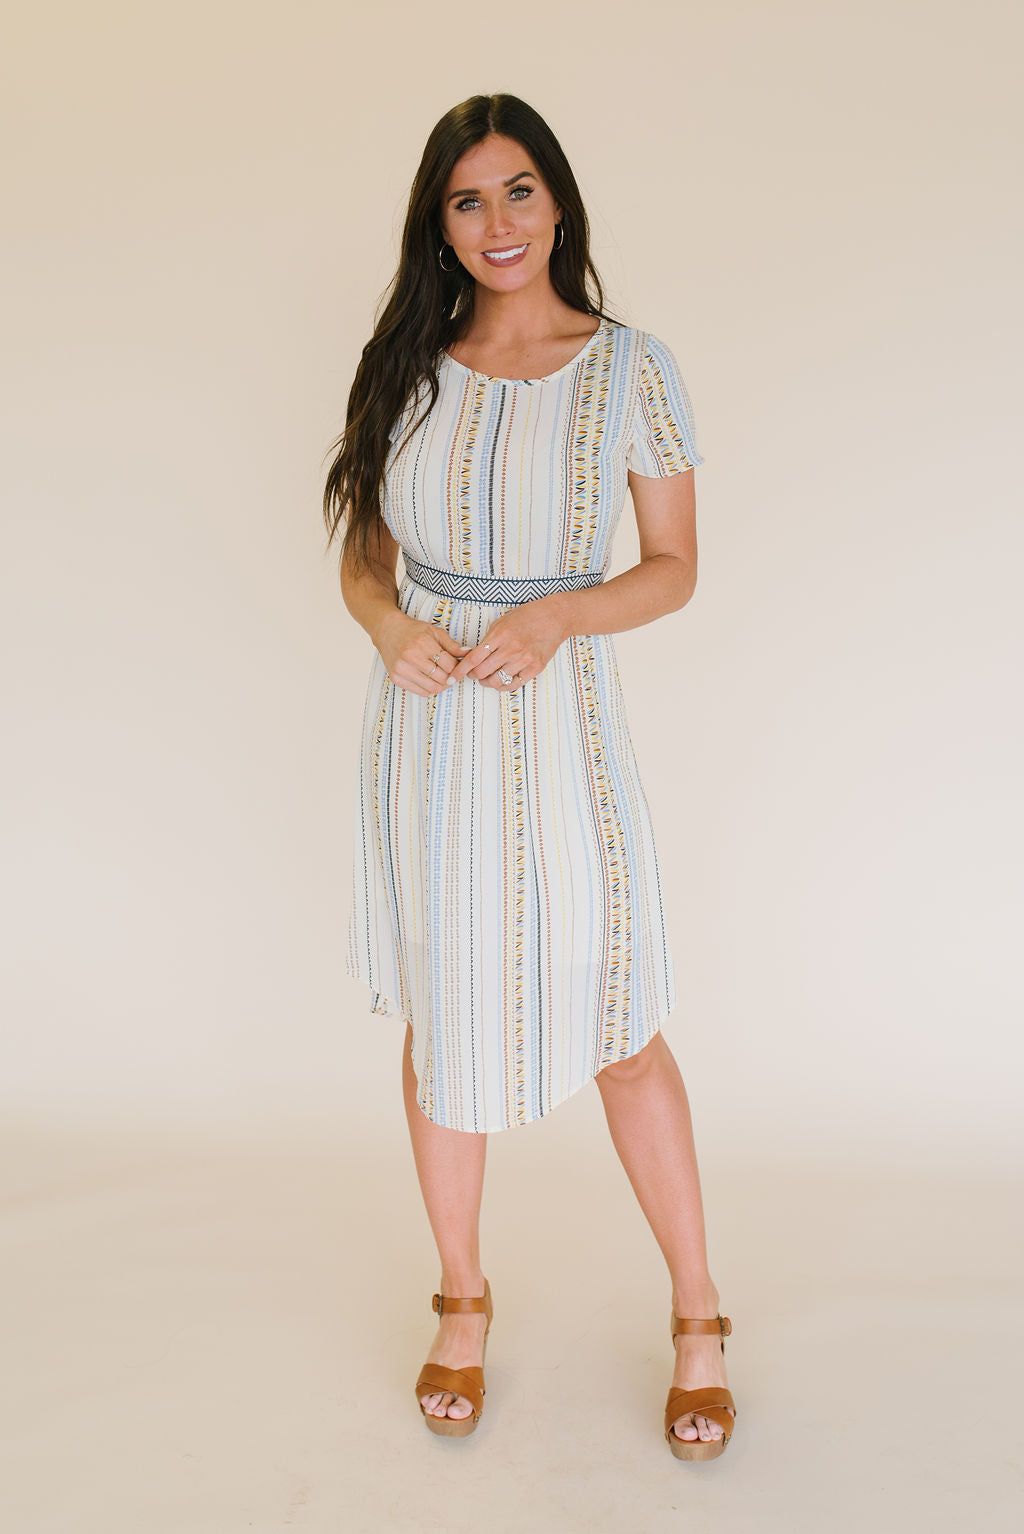 ELINOR MIDI SWING DRESS IN IVORY